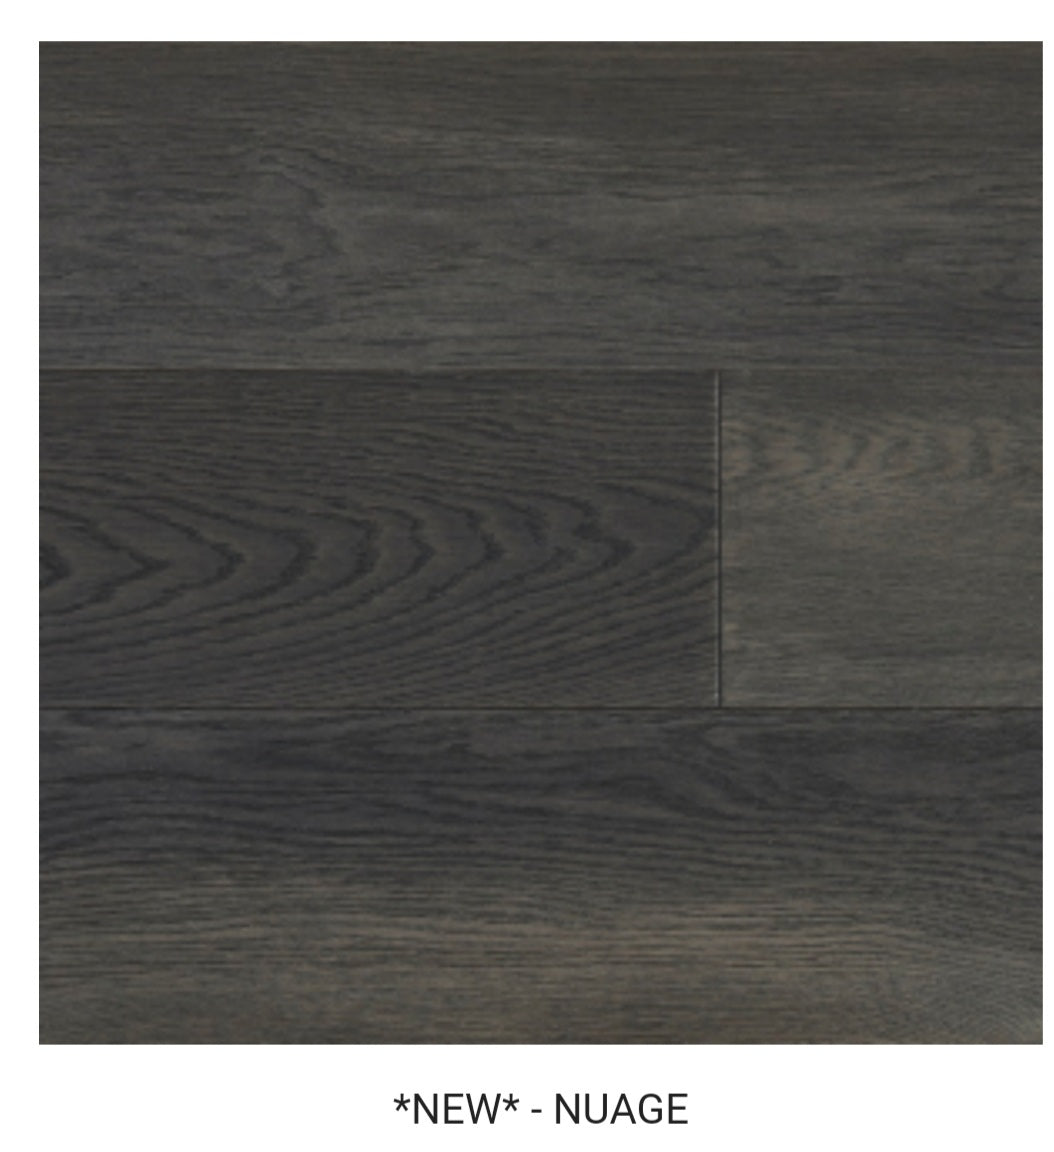 Premier Oak Engineered Flooring 189x12mm (price is per m2)